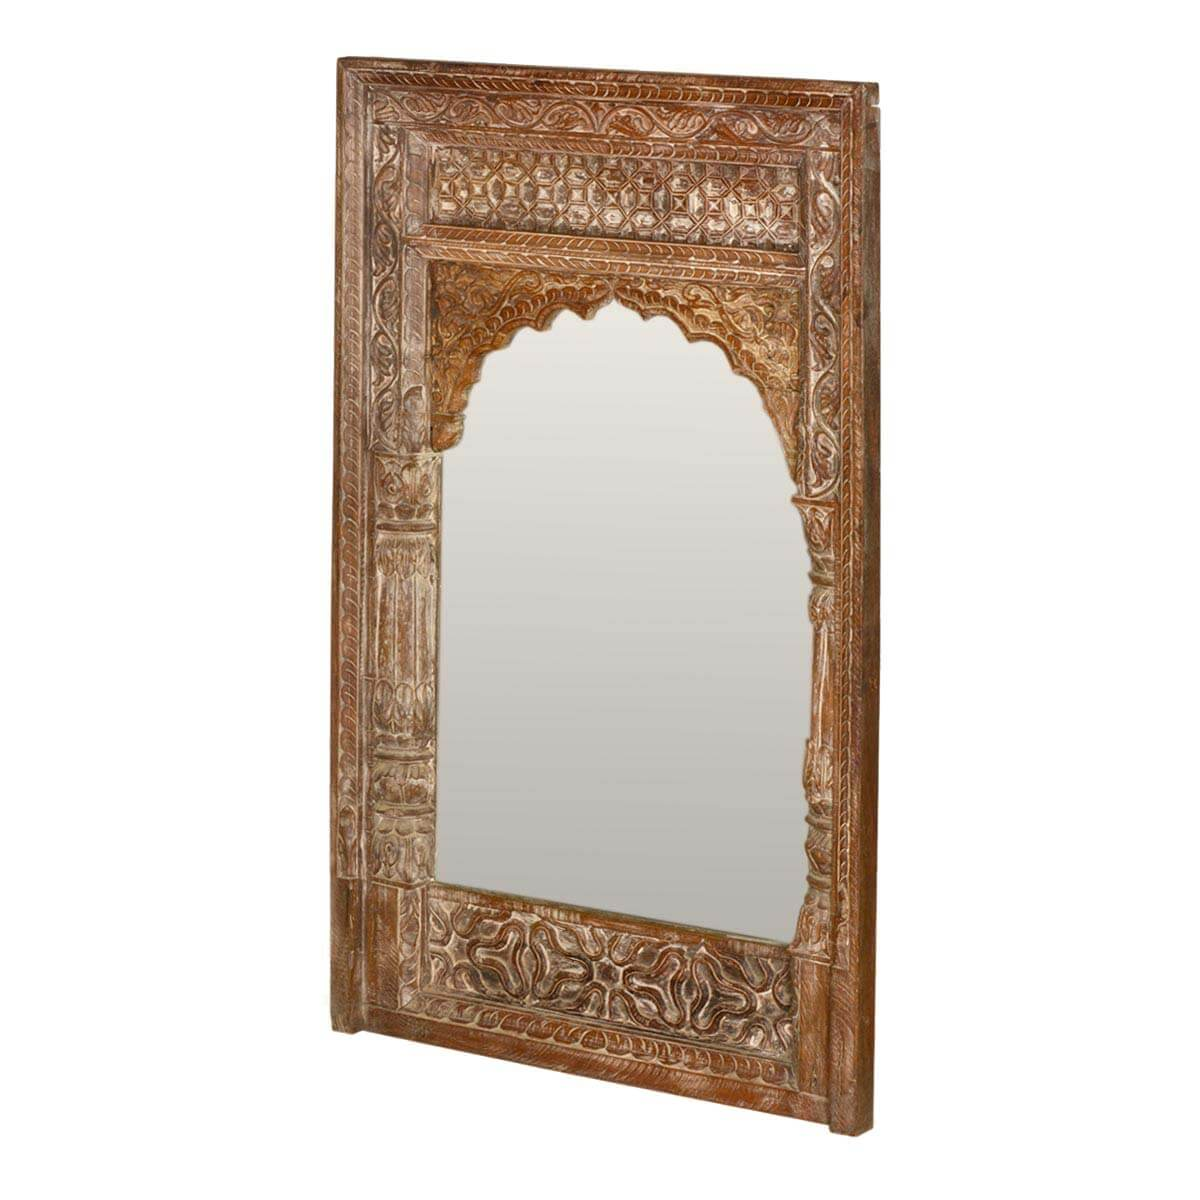 Taj Mahal Hand Carved Reclaimed Wood 44 Wall Mirror Frame - Taj Mahal Hand Carved Reclaimed Wood 44